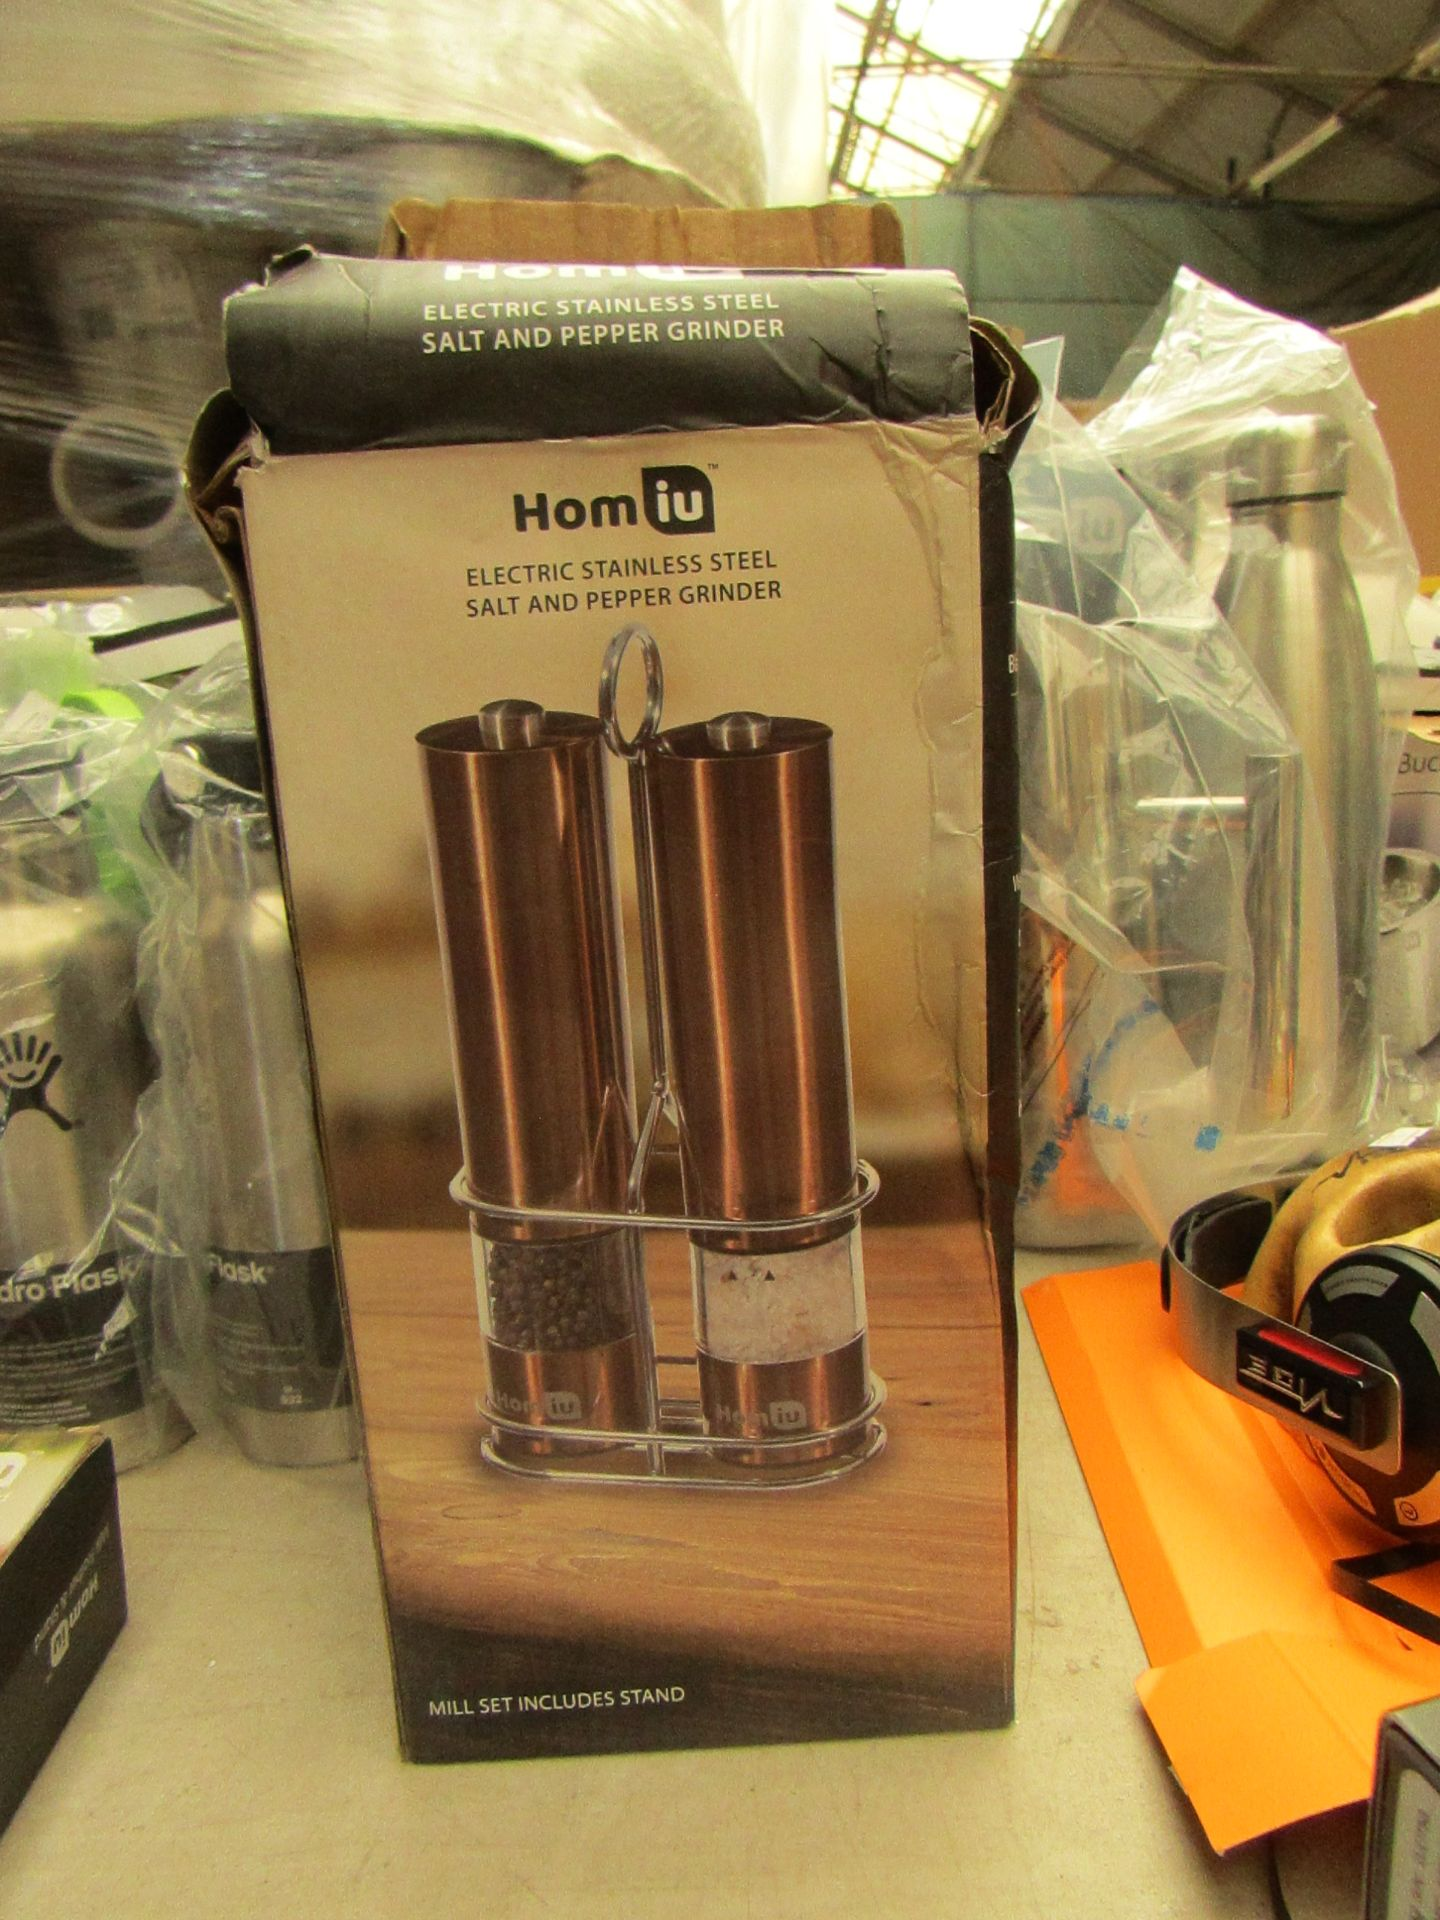 Lotto 20 - Homiu Electric Stainless Steel Salt and Pepper Grinder set in Copper . Boxed